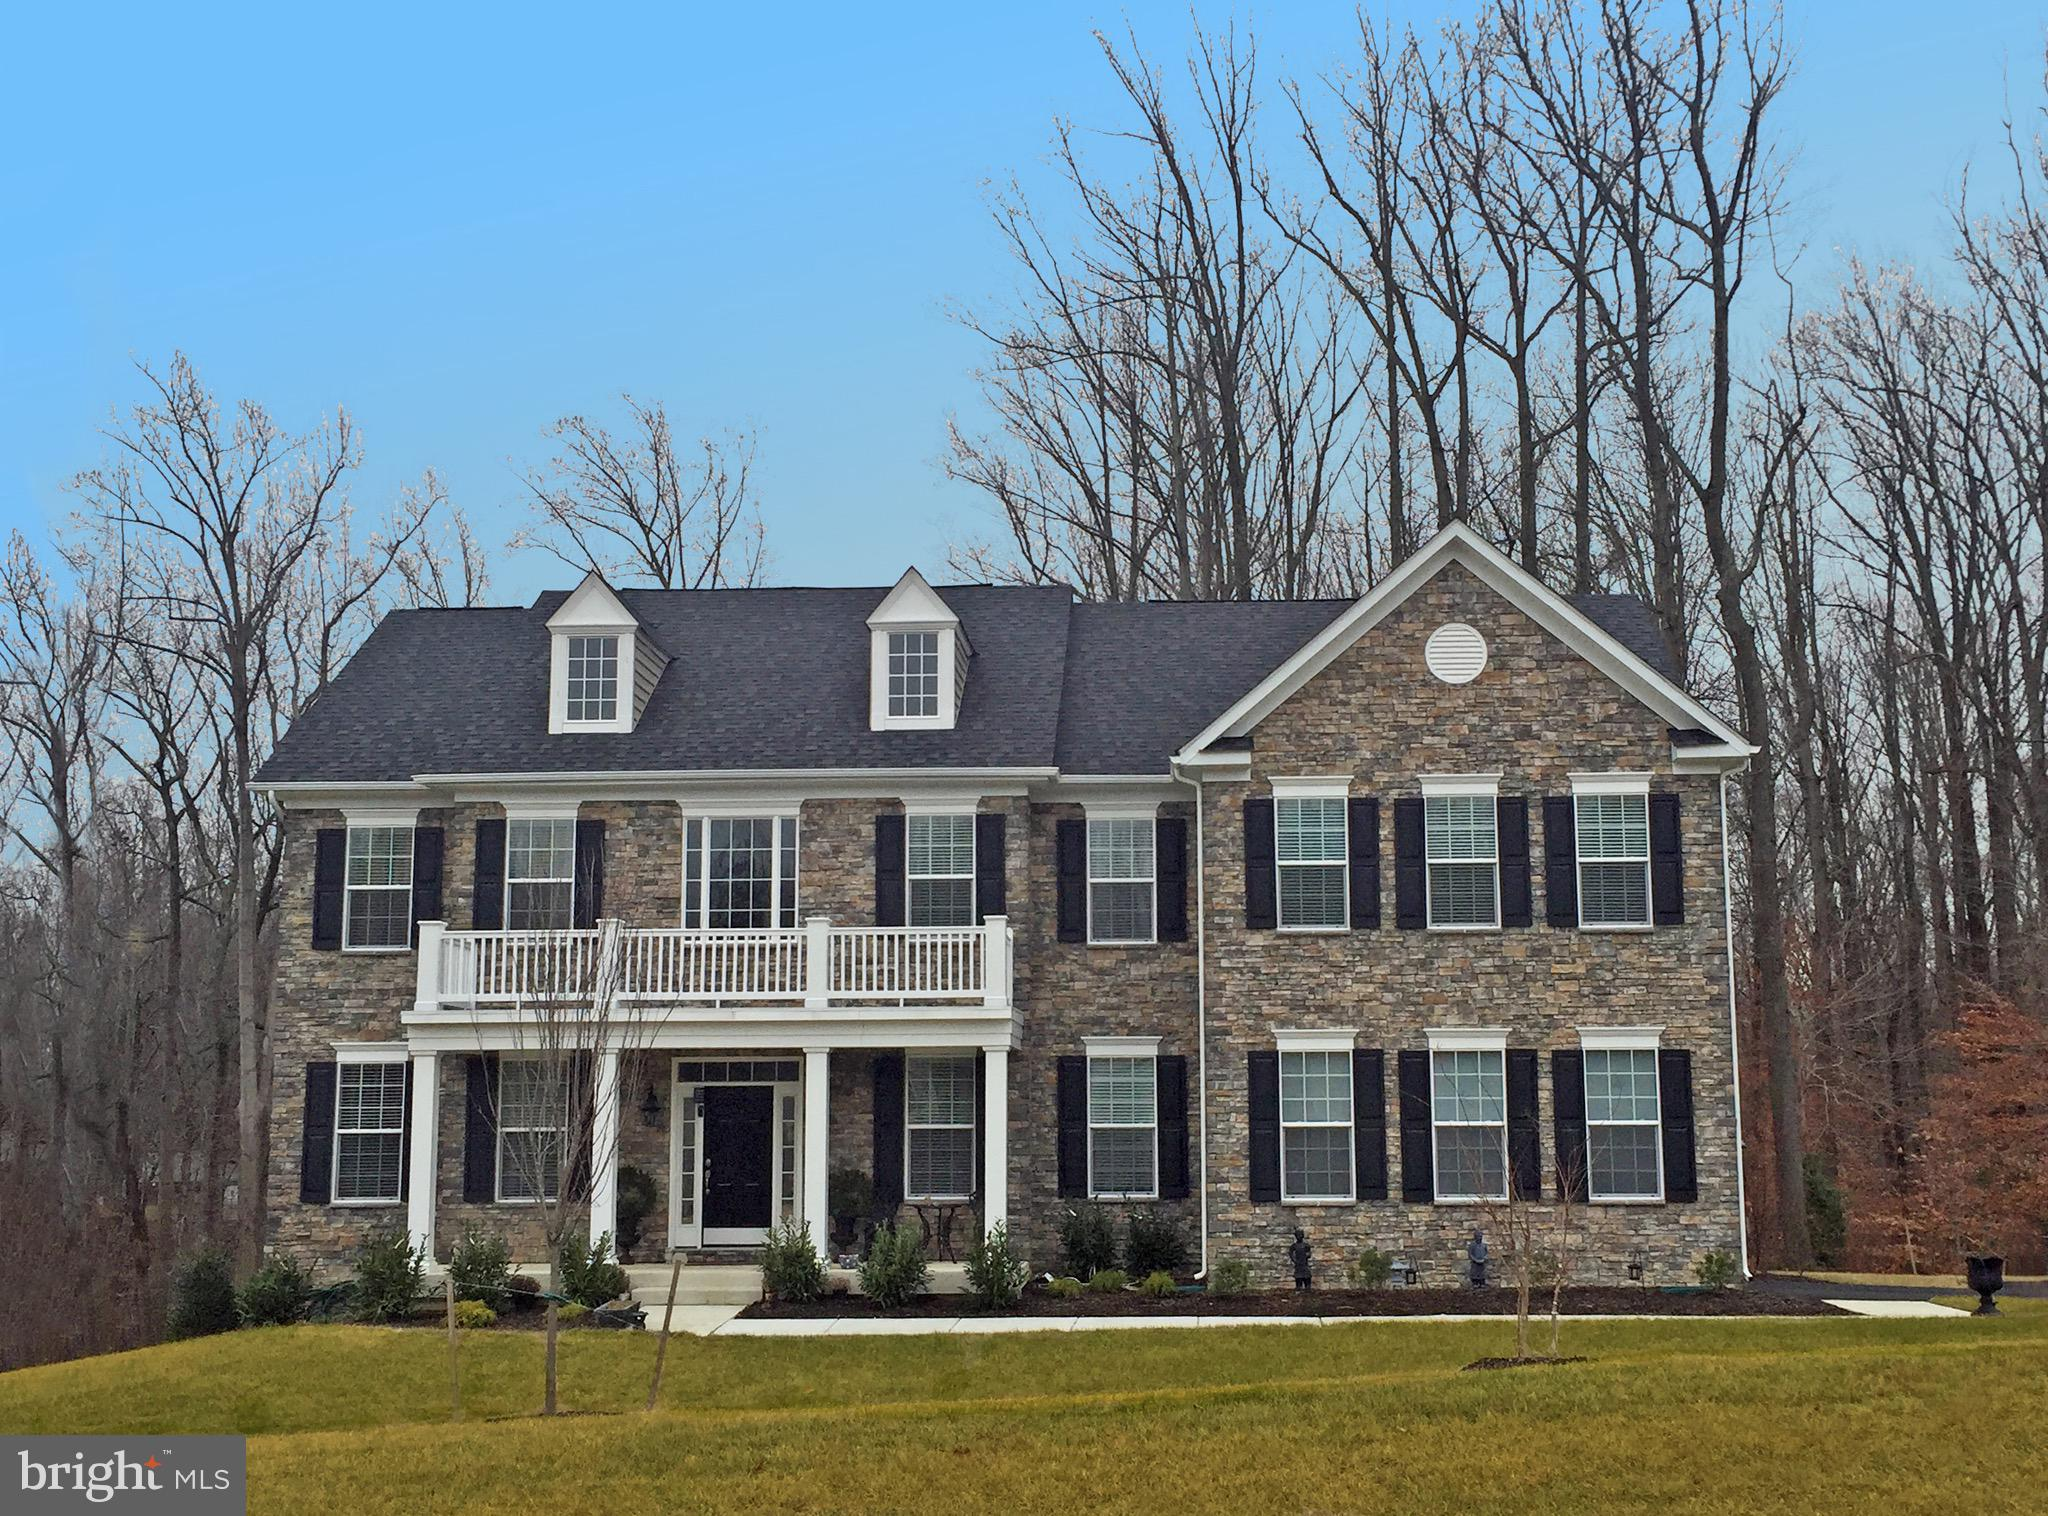 20309 WILEY COURT, LAYTONSVILLE, MD 20882